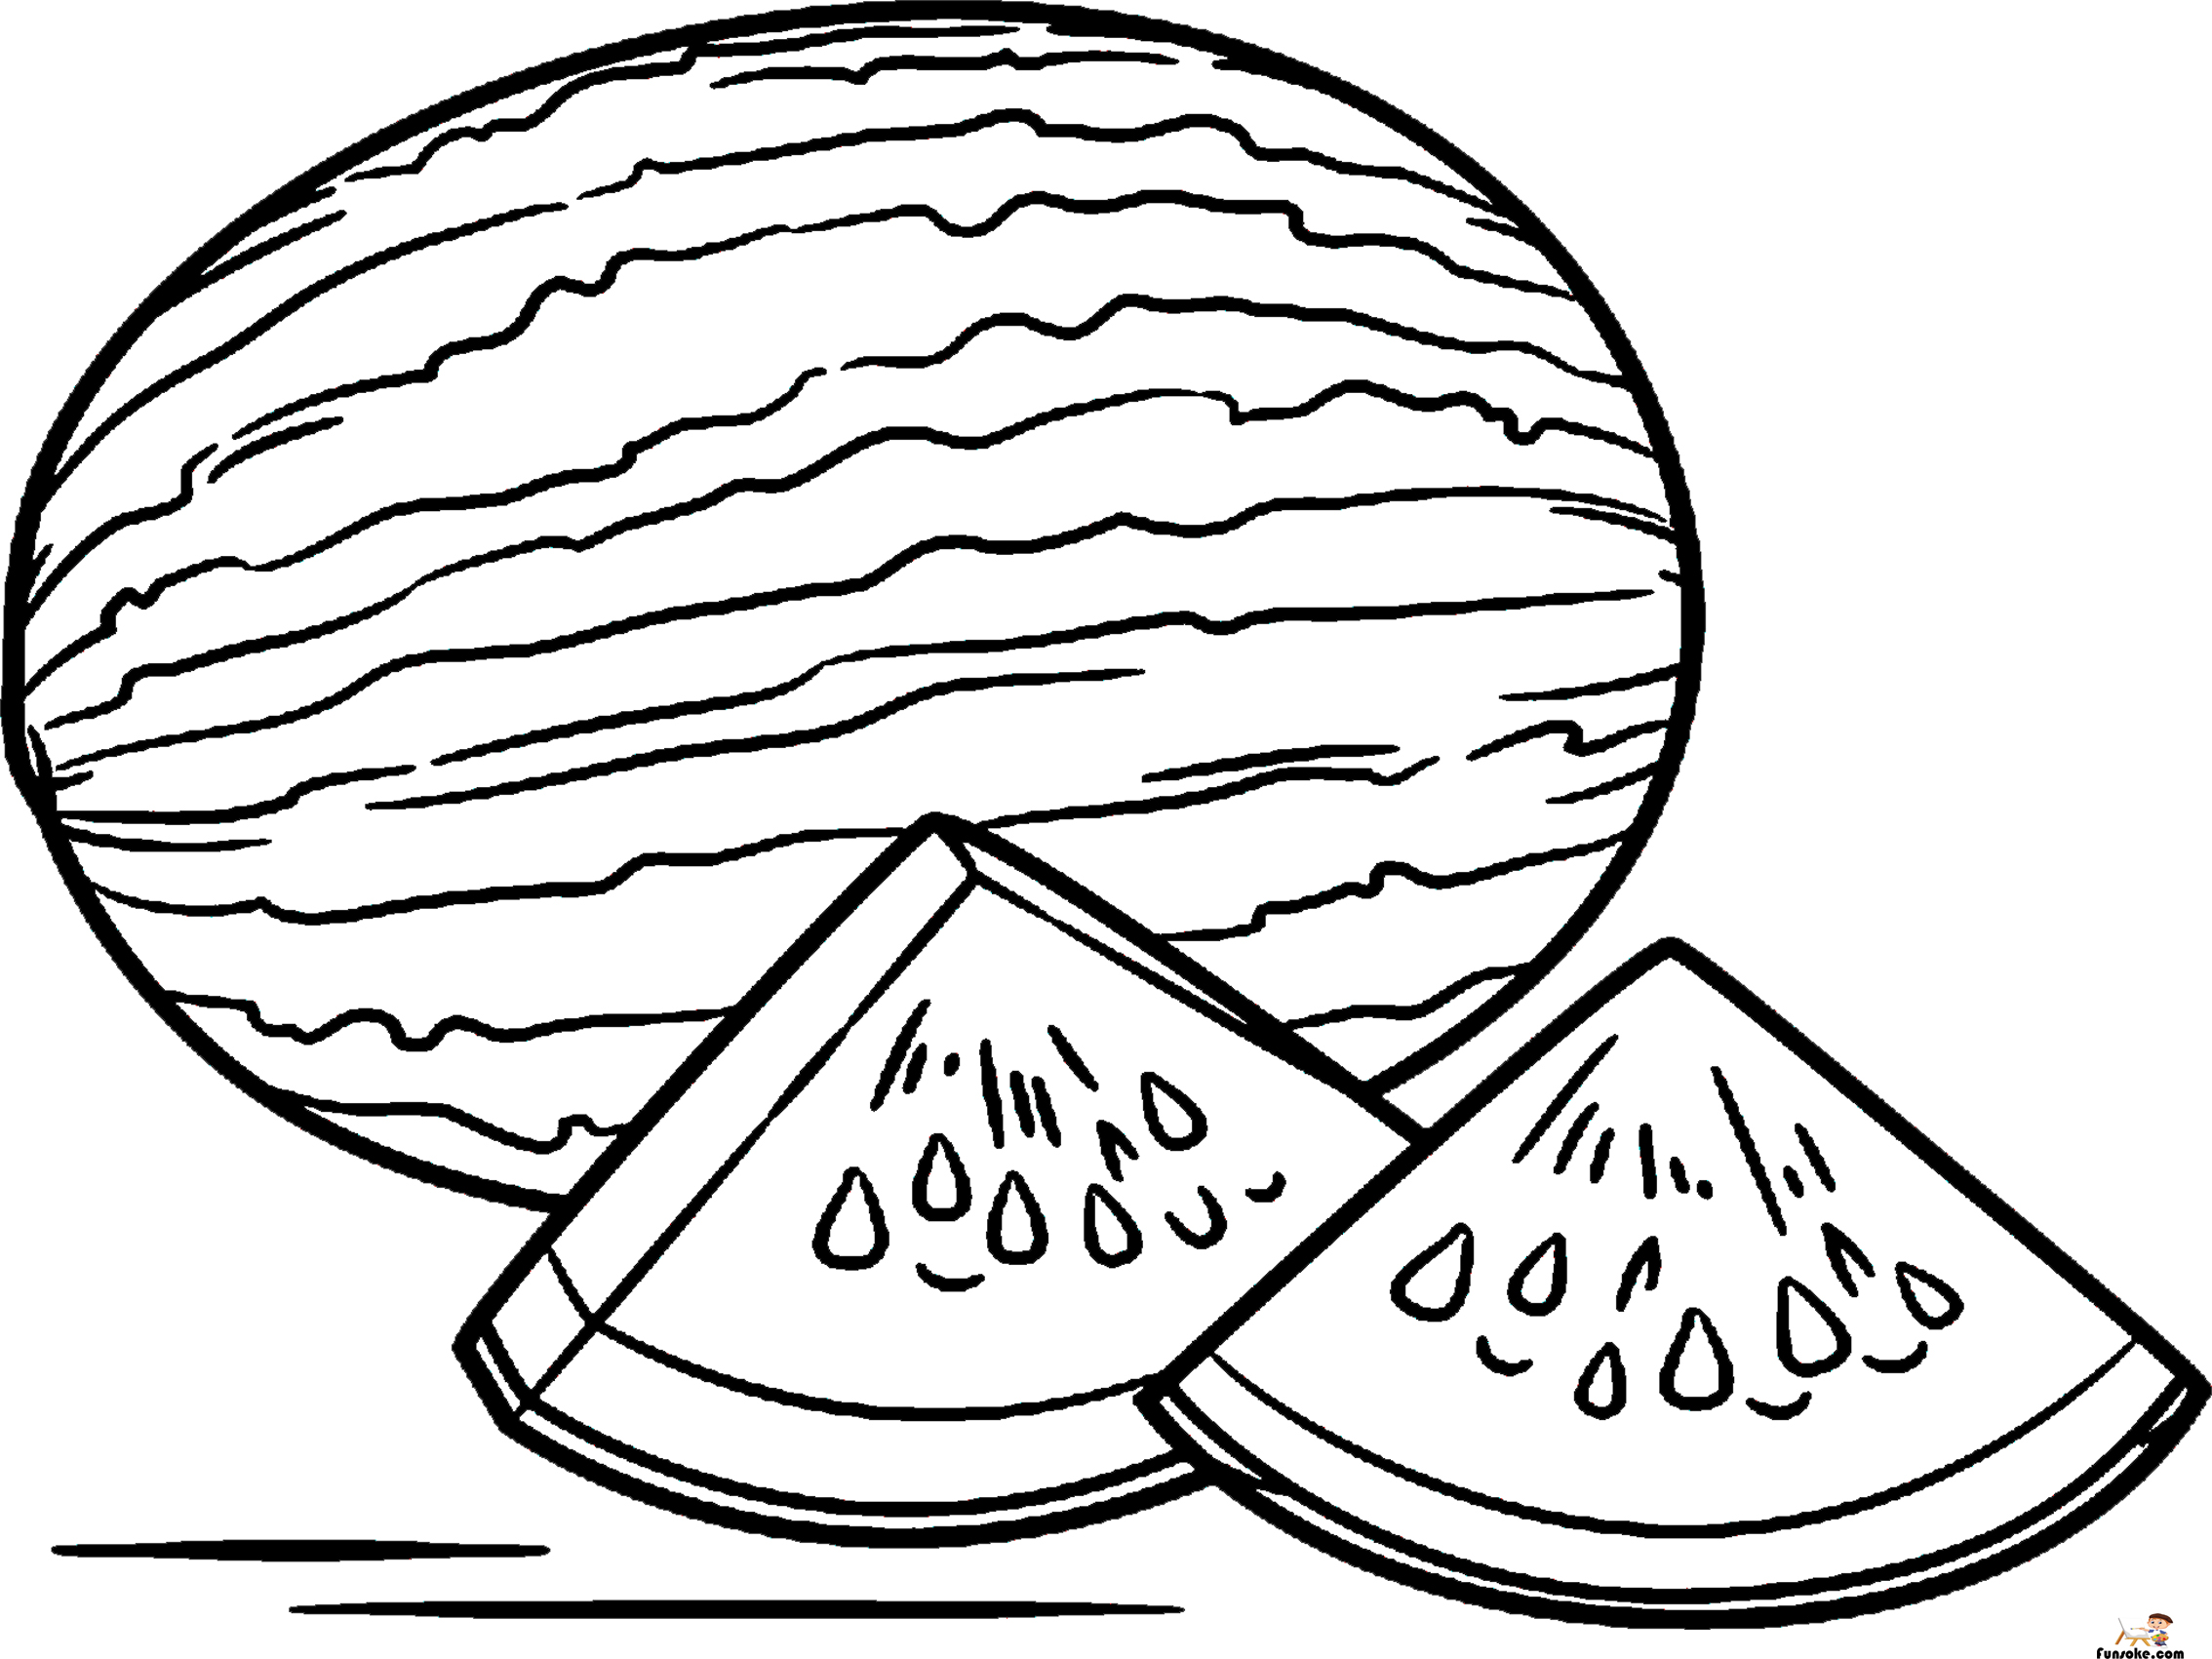 watermelon coloring image watermelon coloring pages preschoolers funsoke image watermelon coloring 1 1